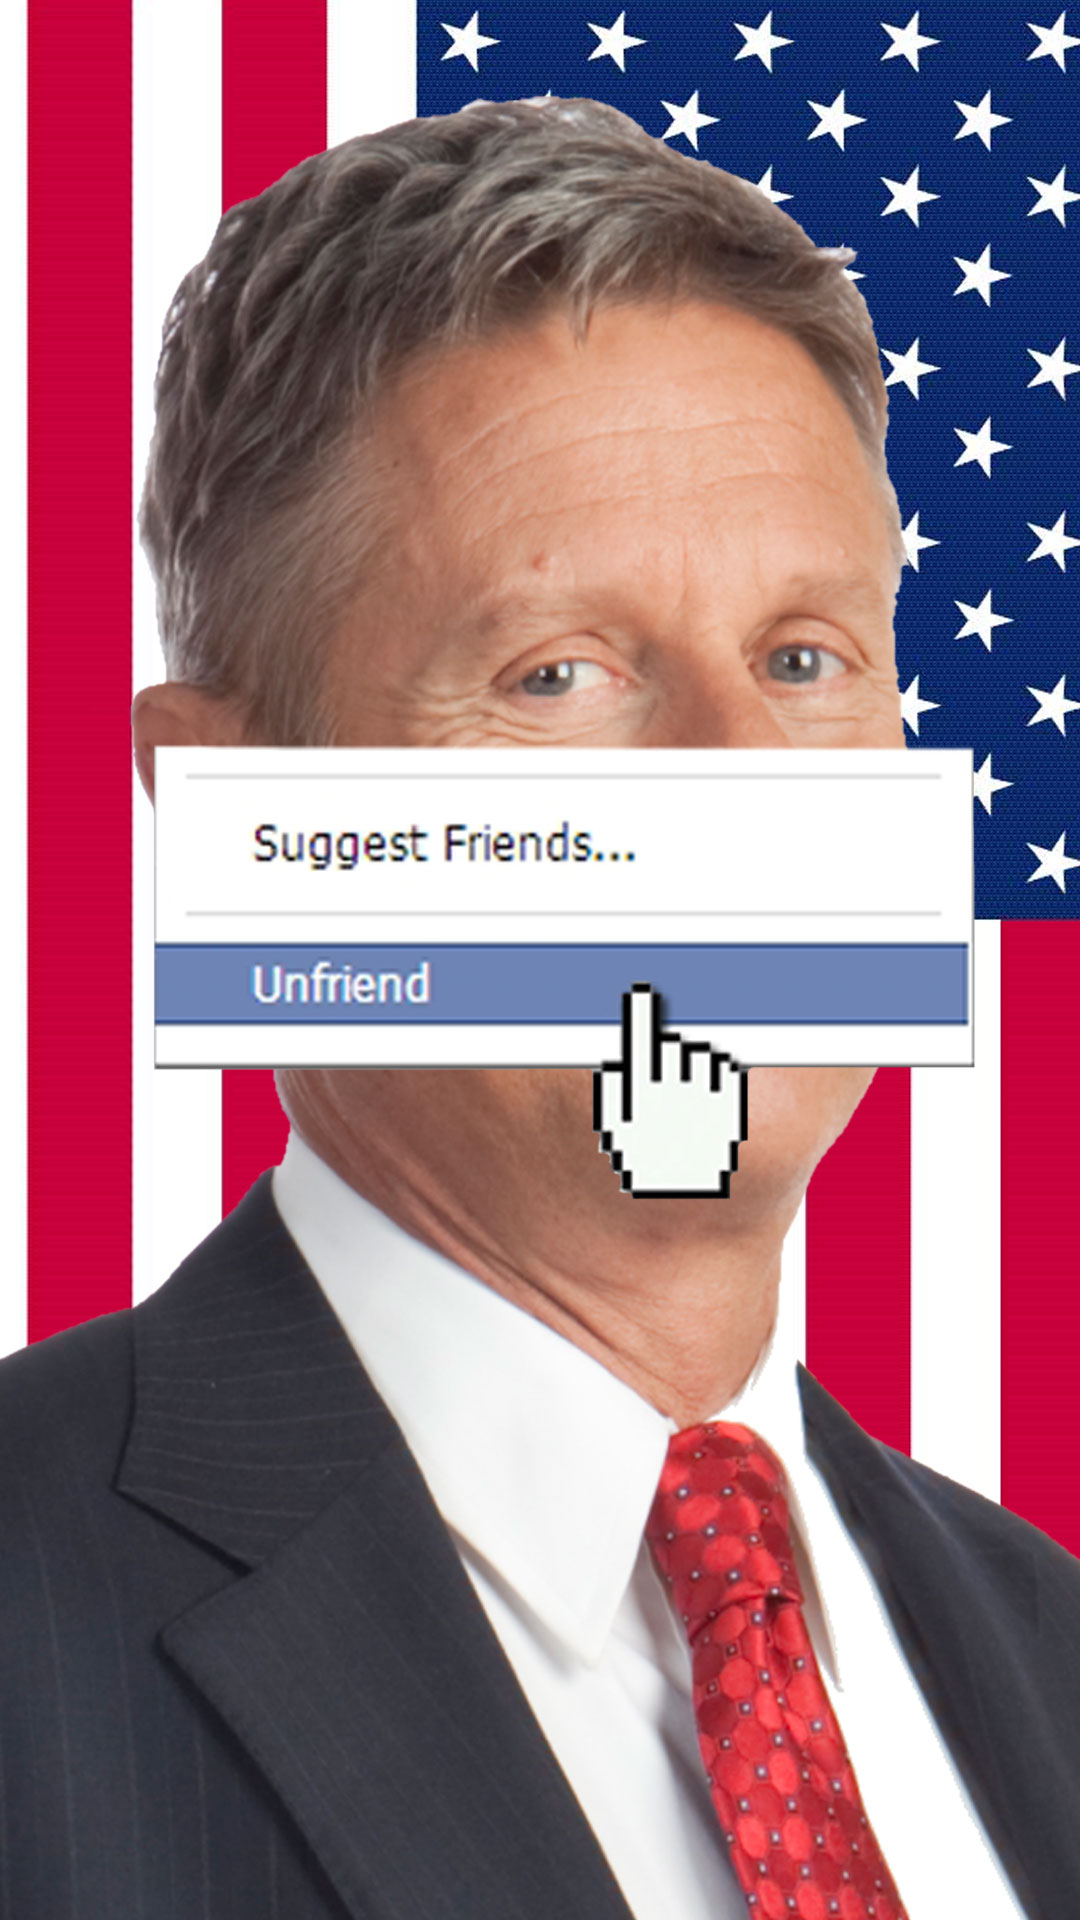 politician_unfriend3.jpg